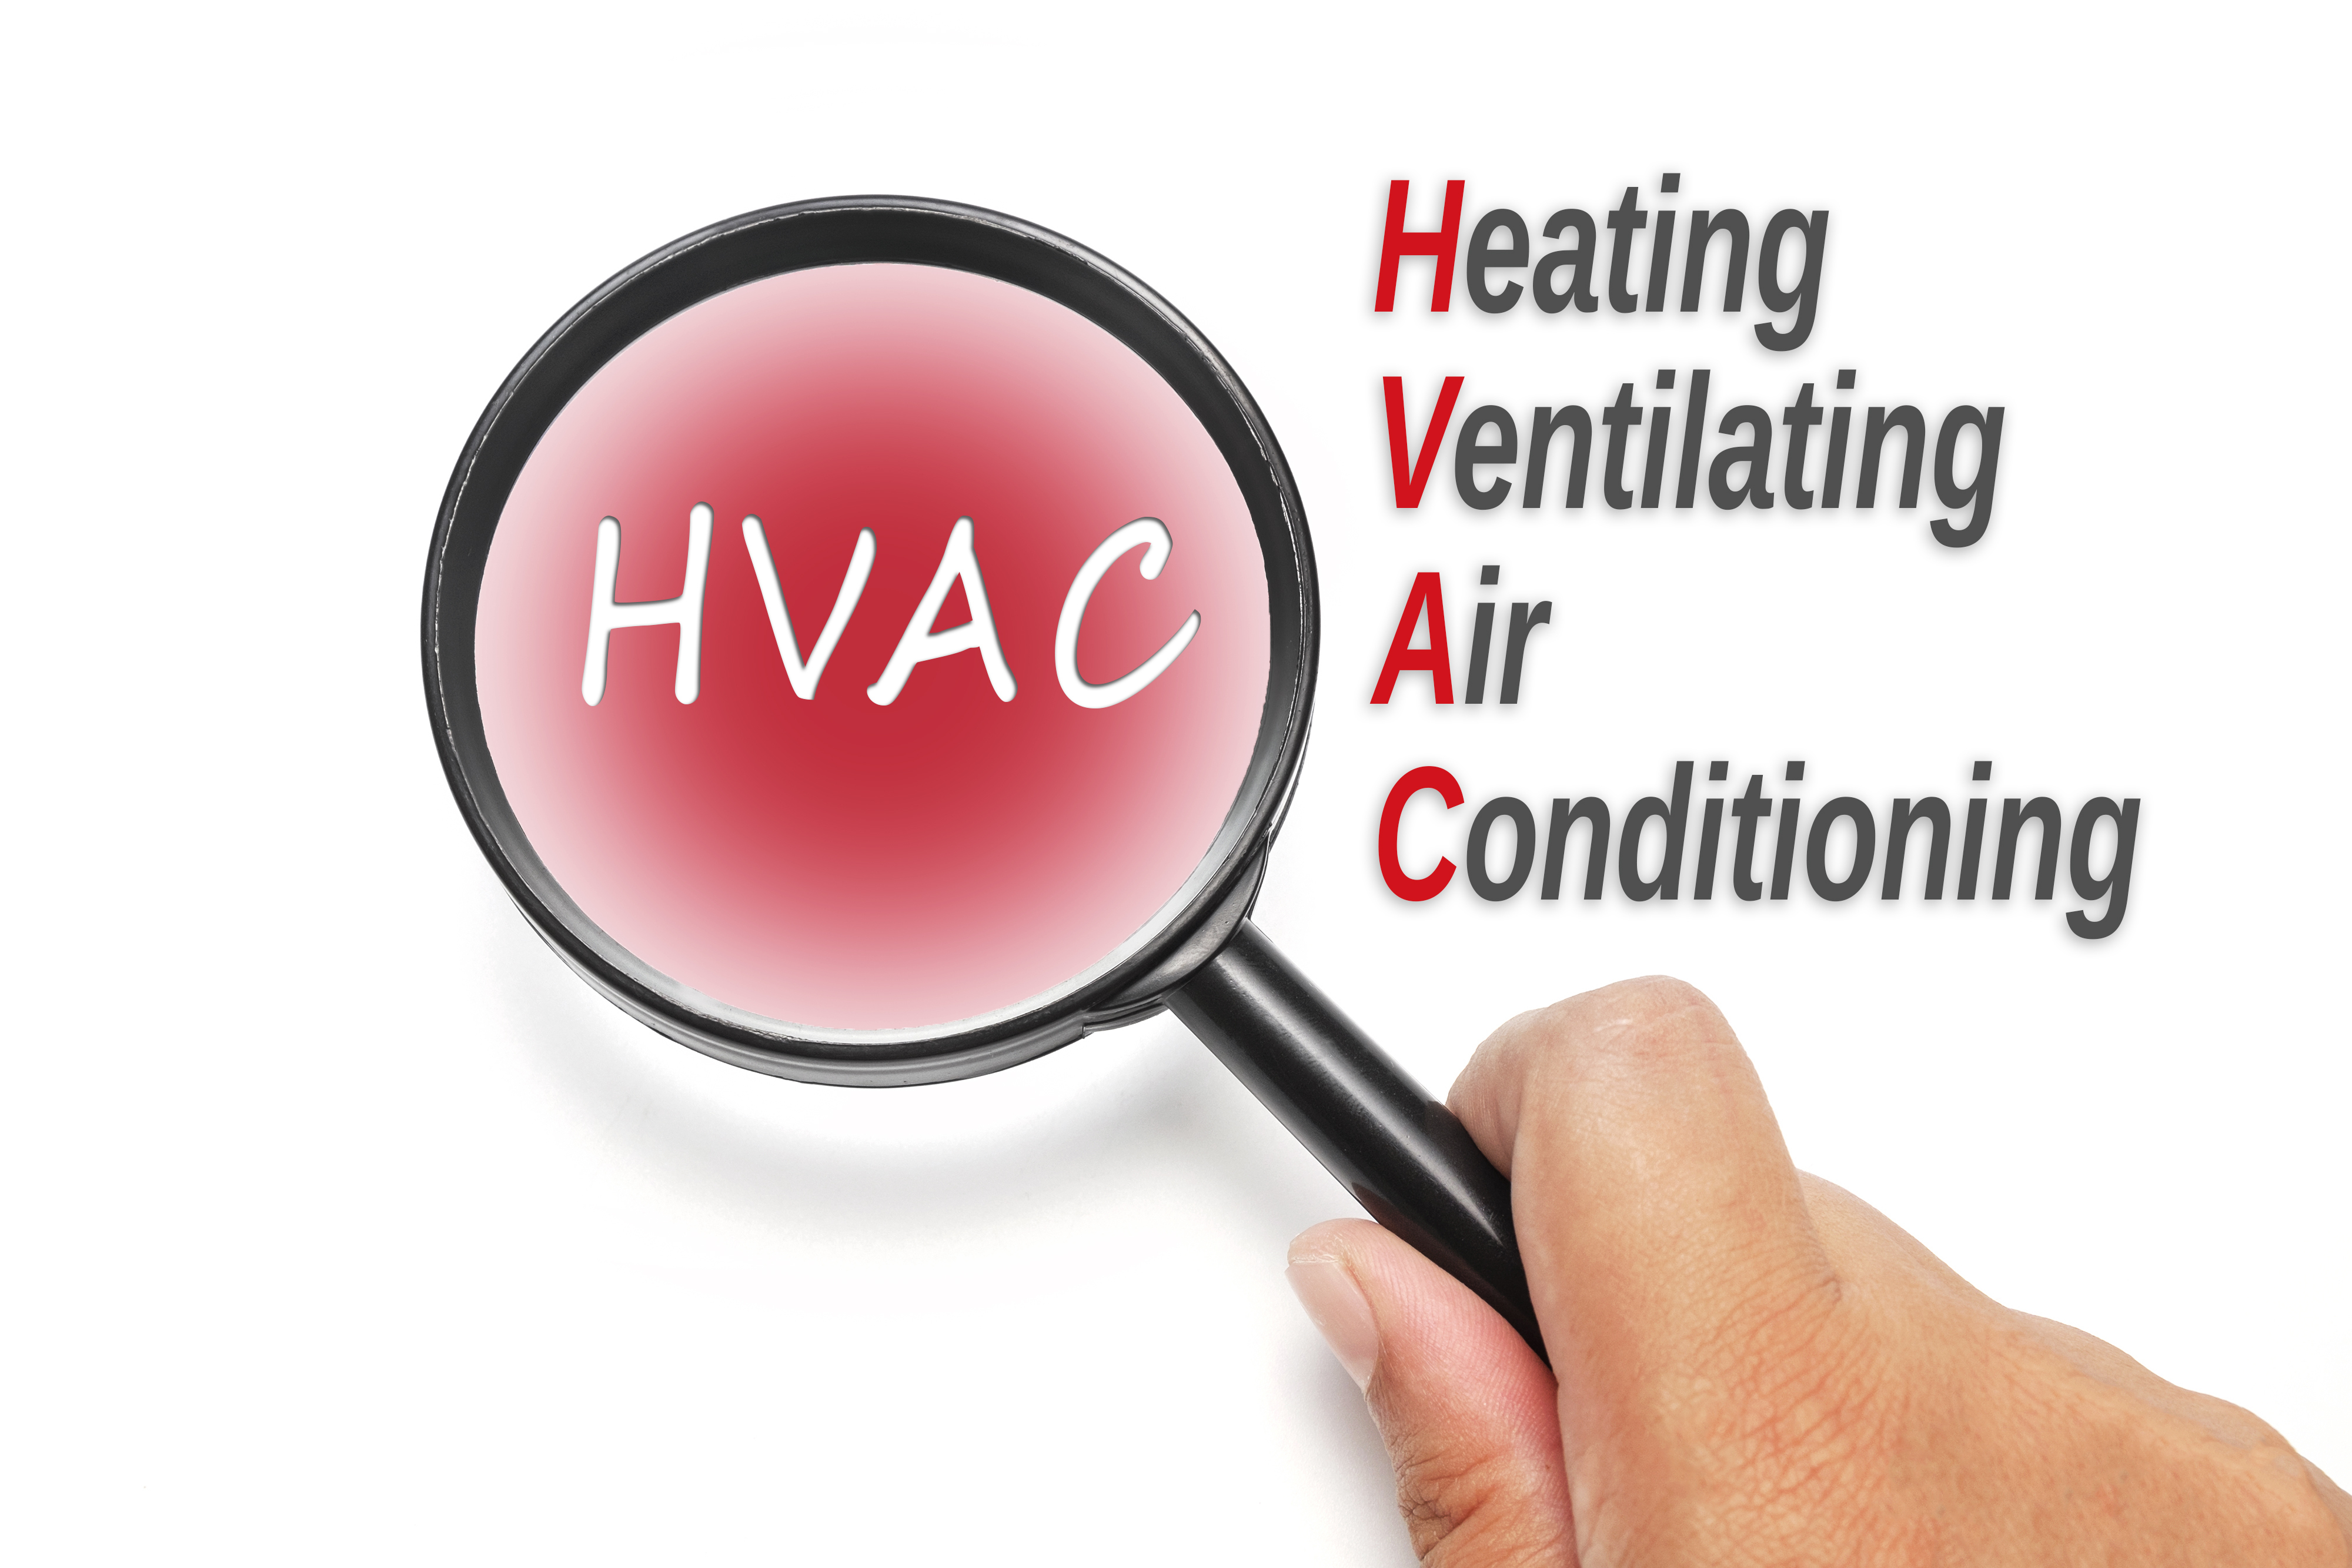 Top local AC repair services and HVAC Contractors in your local California area